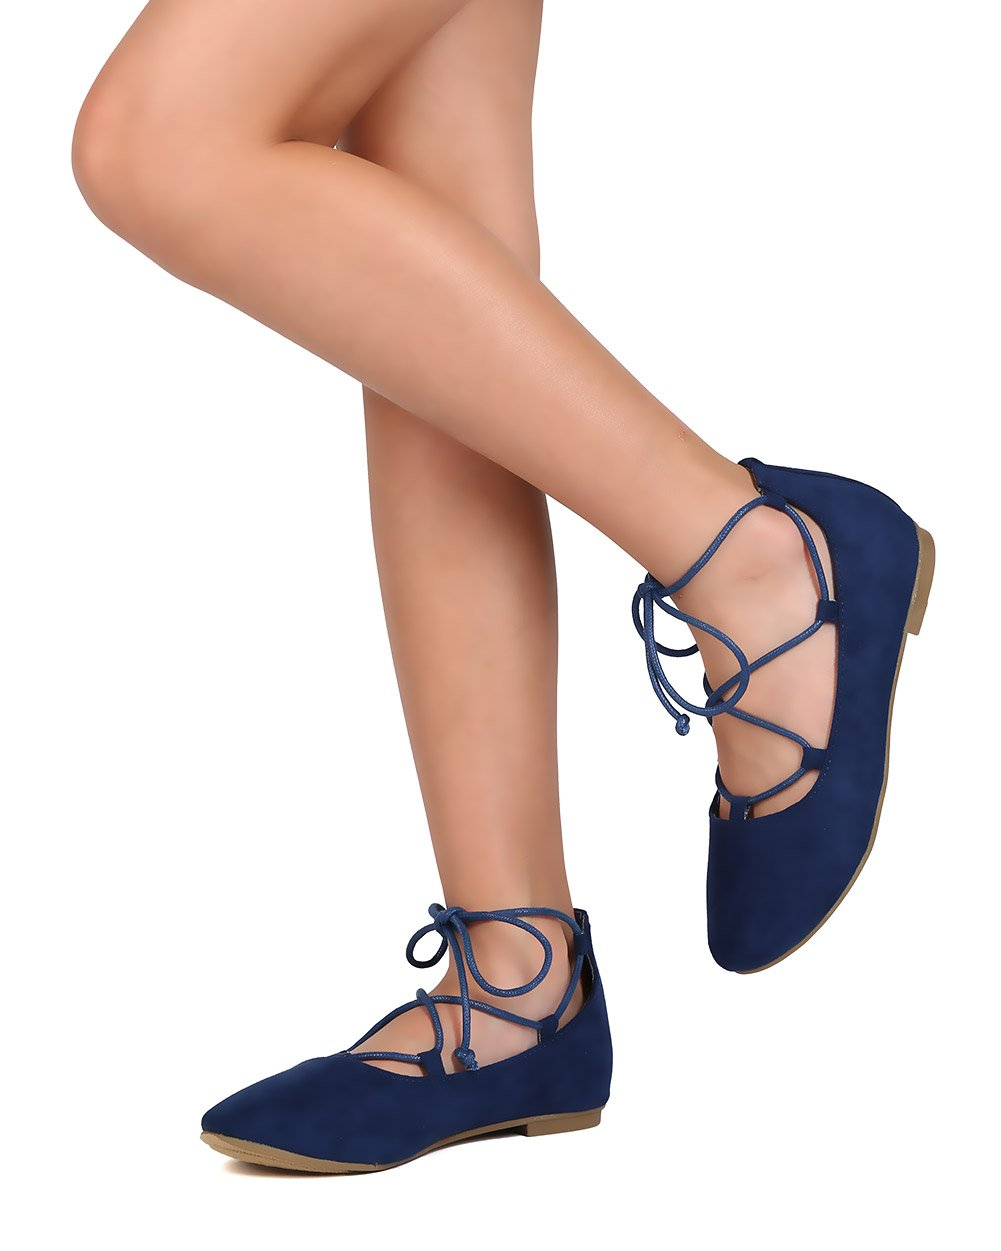 BETANI Faux Suede Gilly Tie Ballerina Flat (Little Girl/Big Girl) FB80 - Royal Blue (Size: Little Kid 11)